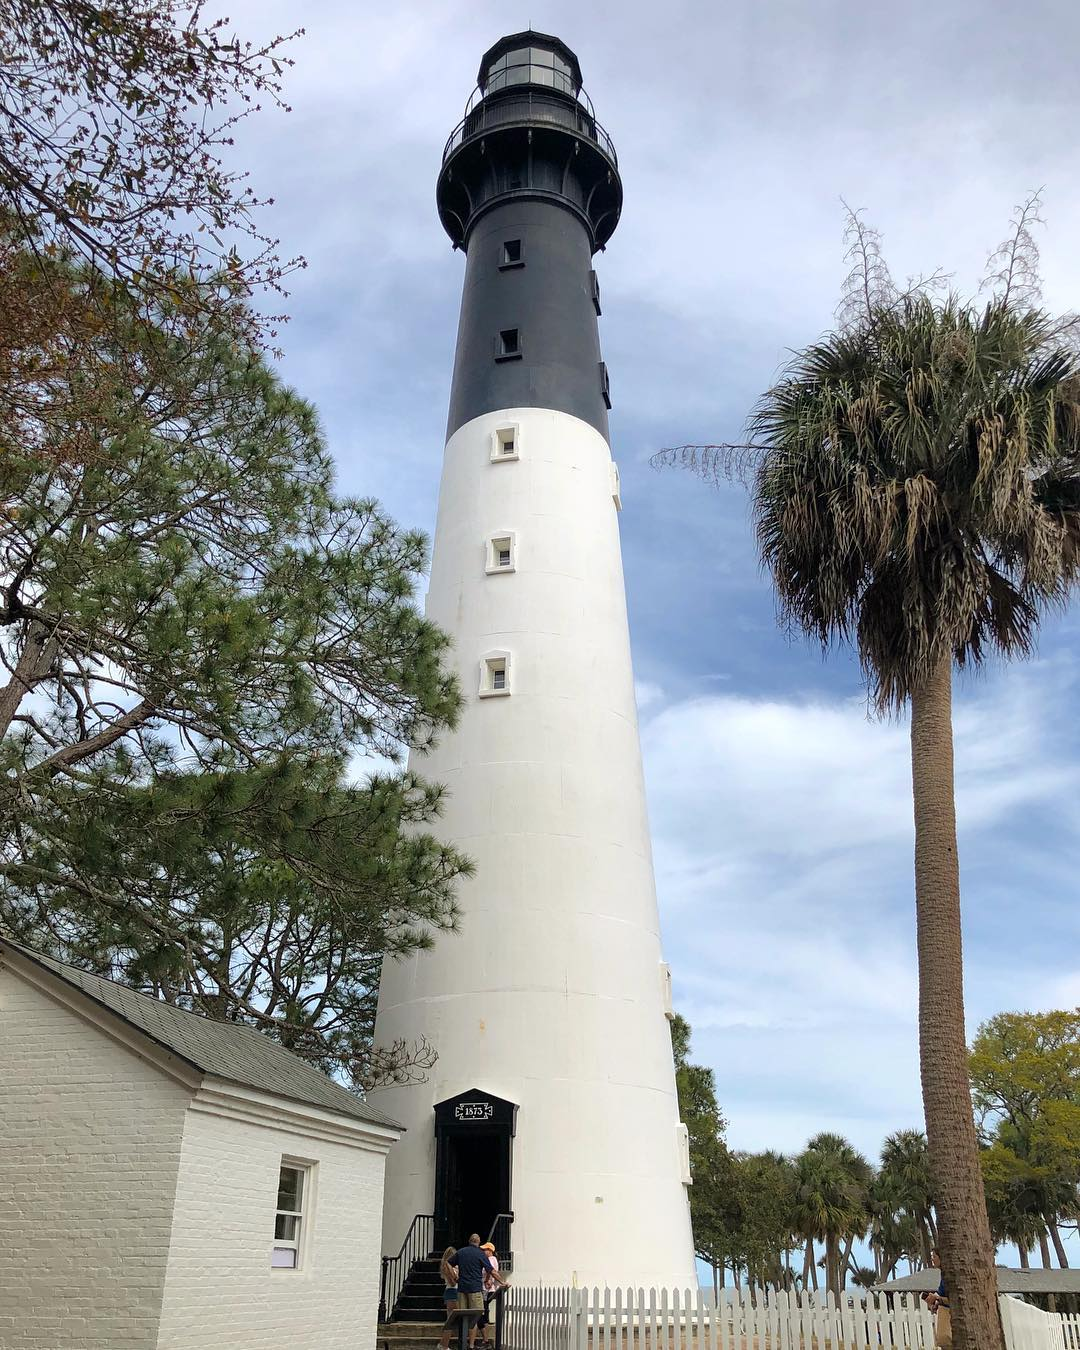 Erected in 1873 and was completed in 1875.  It was relocated from a mile away in 1889 to their present location. The Lighthouse continued operation until deactivation in 1933